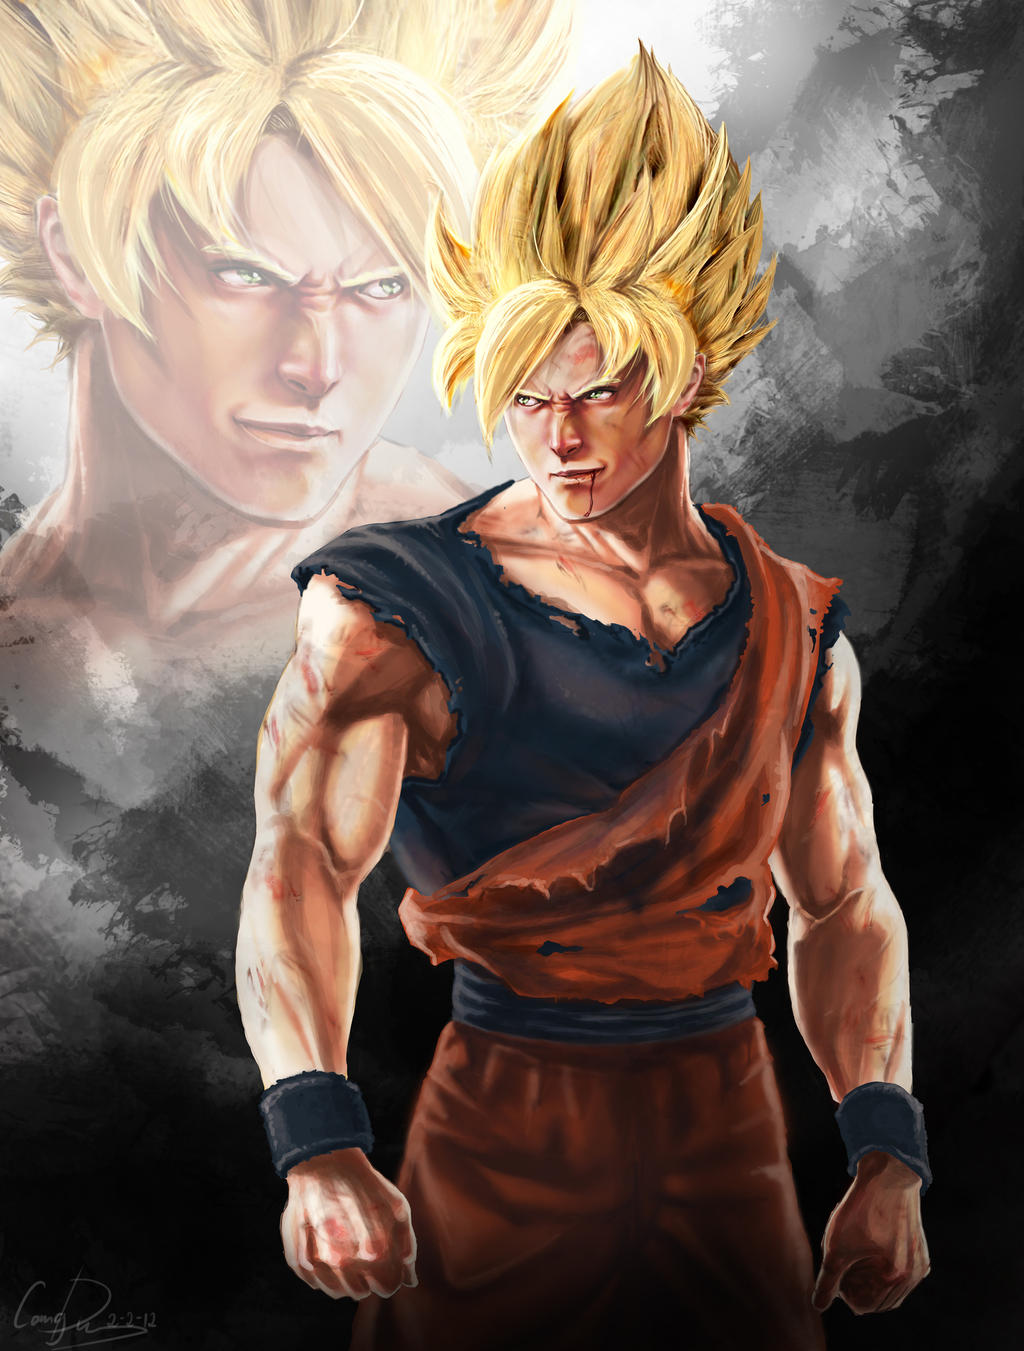 GOKU by CangDu on DeviantArt